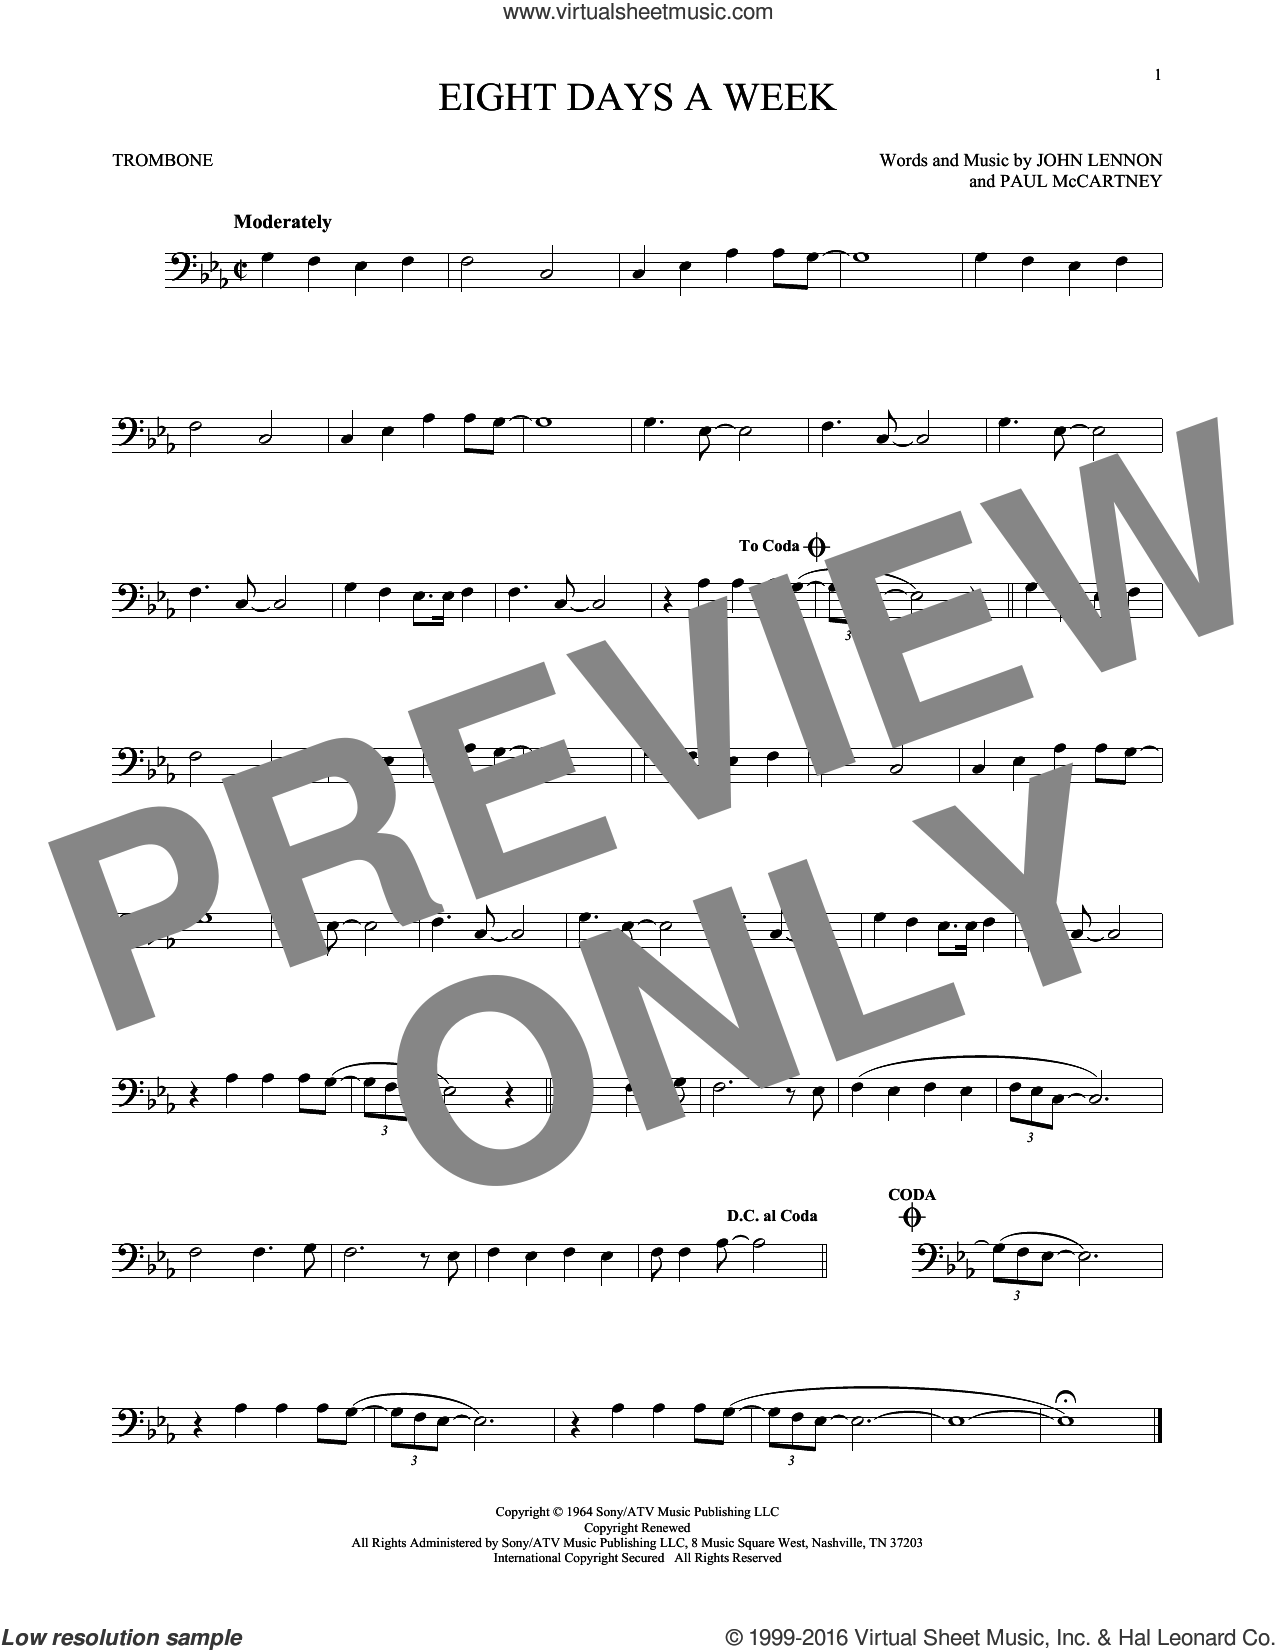 Eight Days A Week sheet music for trombone solo by The Beatles, John Lennon and Paul McCartney, intermediate skill level